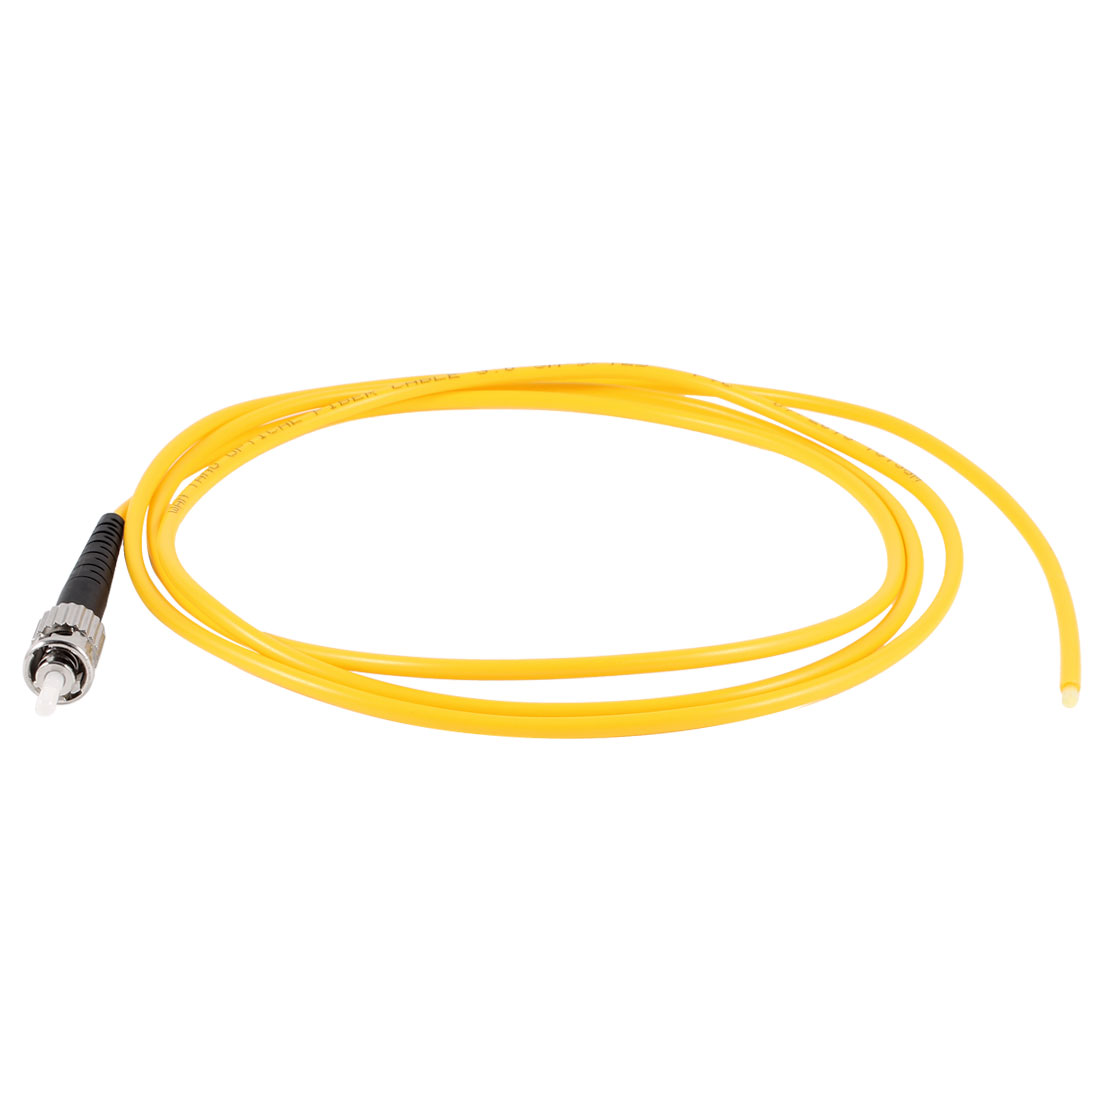 Yellow 1.5M 5ft Fiber Optic Cable ST Connector SM Single Model SX 9/125 3.0